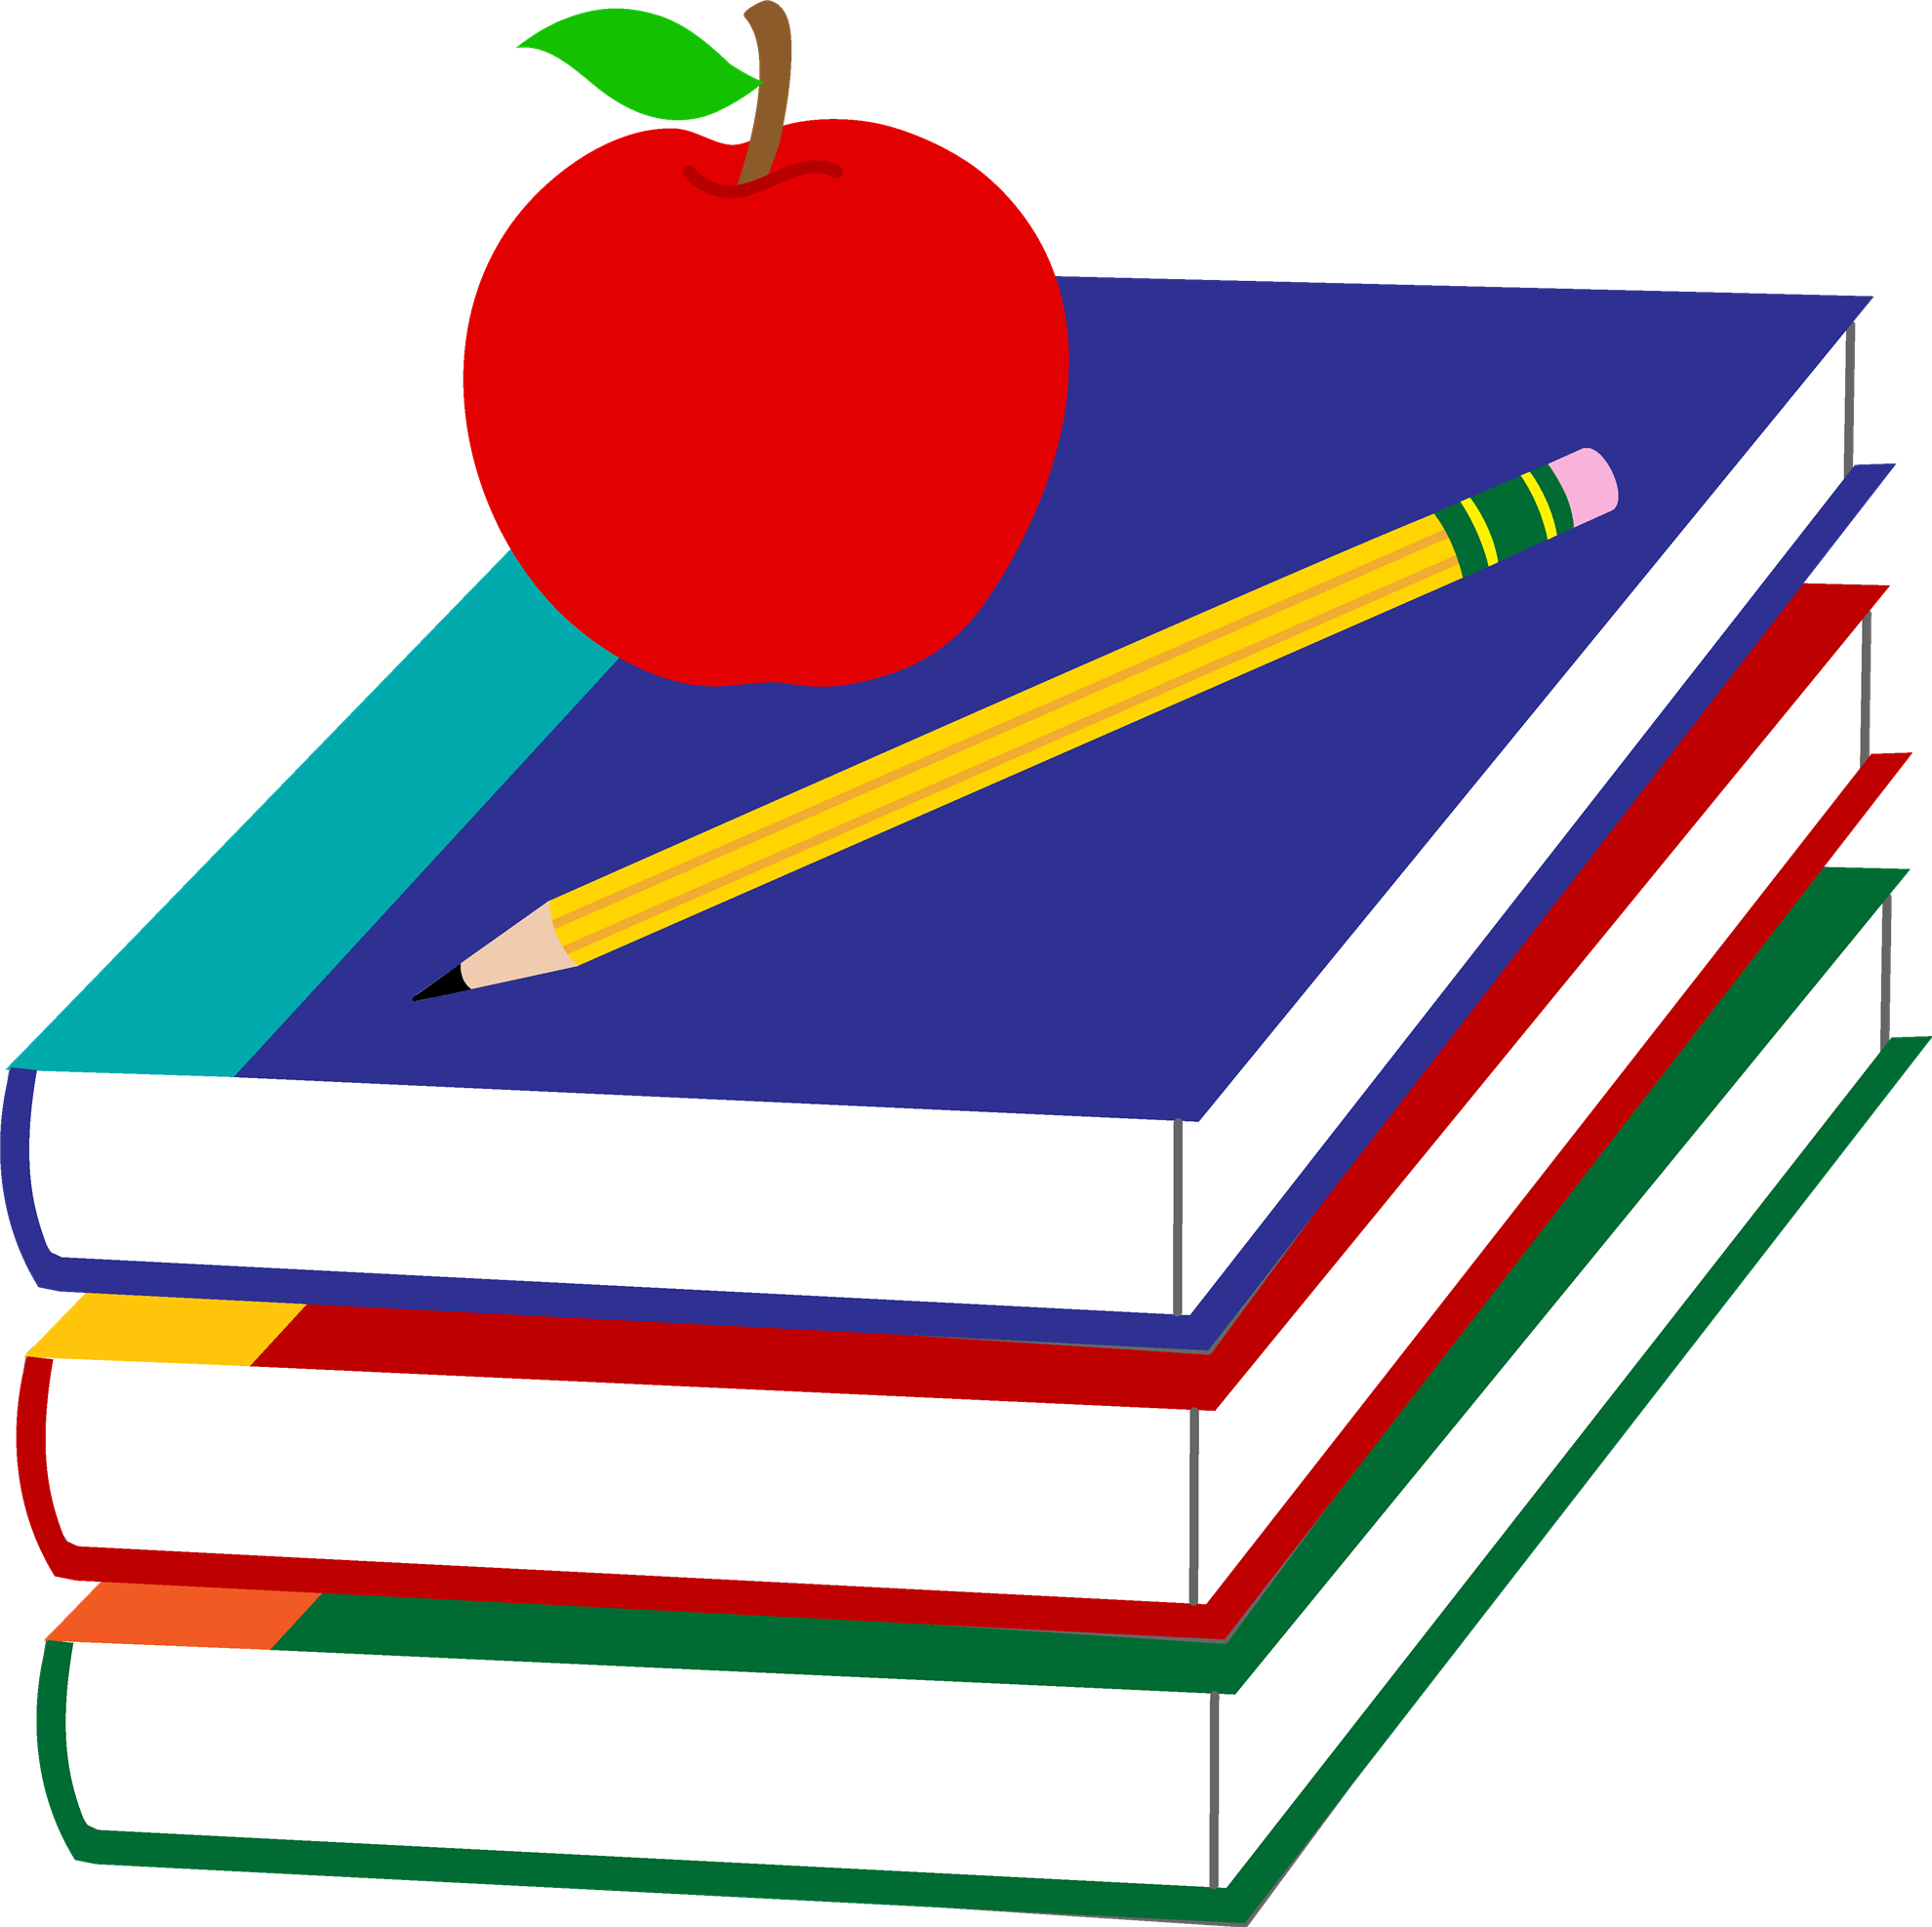 Clipart apple on book 2007 images graphic library library learnportwiki14 / Computer Class Extraordinaire! graphic library library